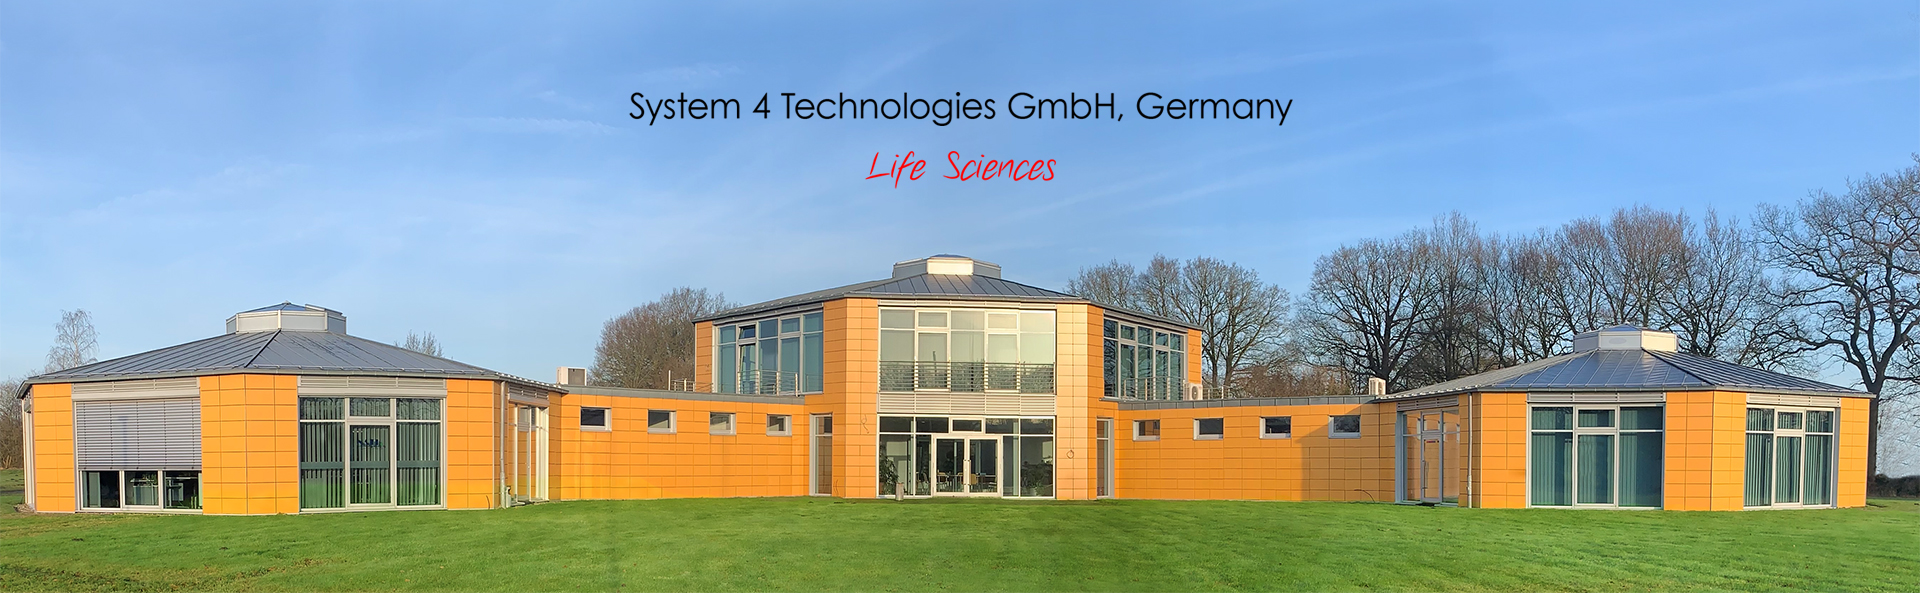 System4 Technologies GmbH Life Science